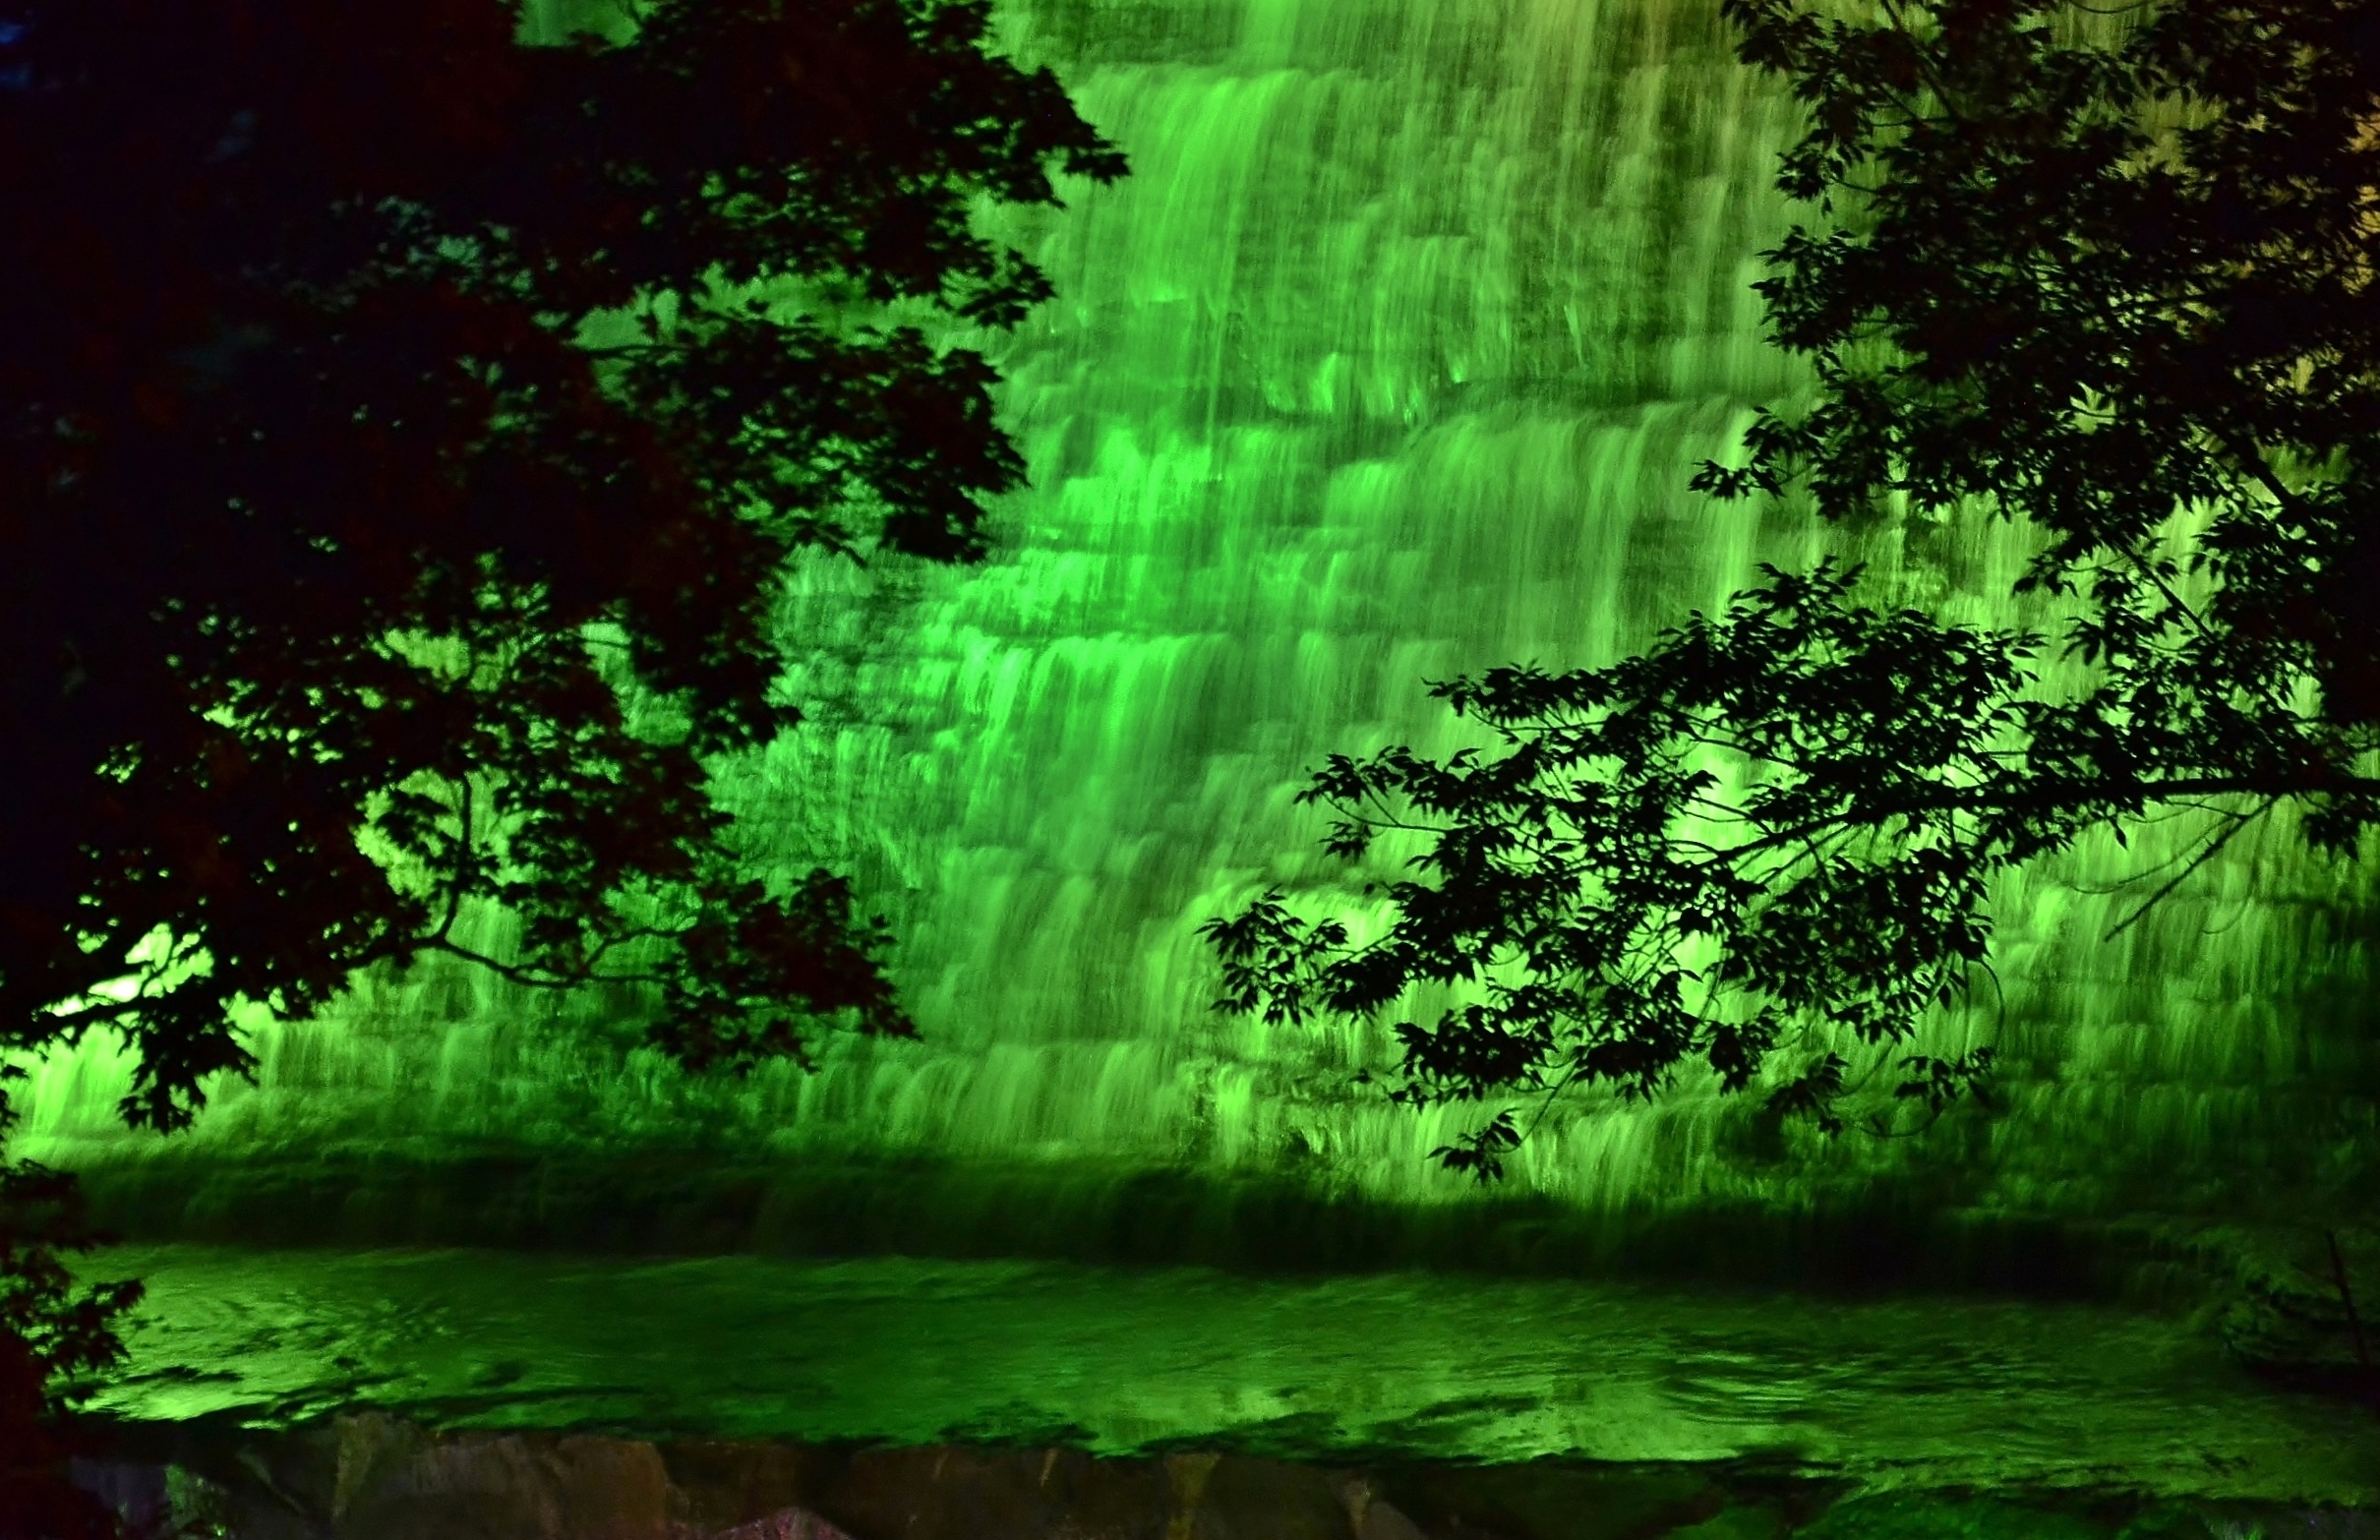 Albion Falls dressed in Green. Pic by Kelly Anne